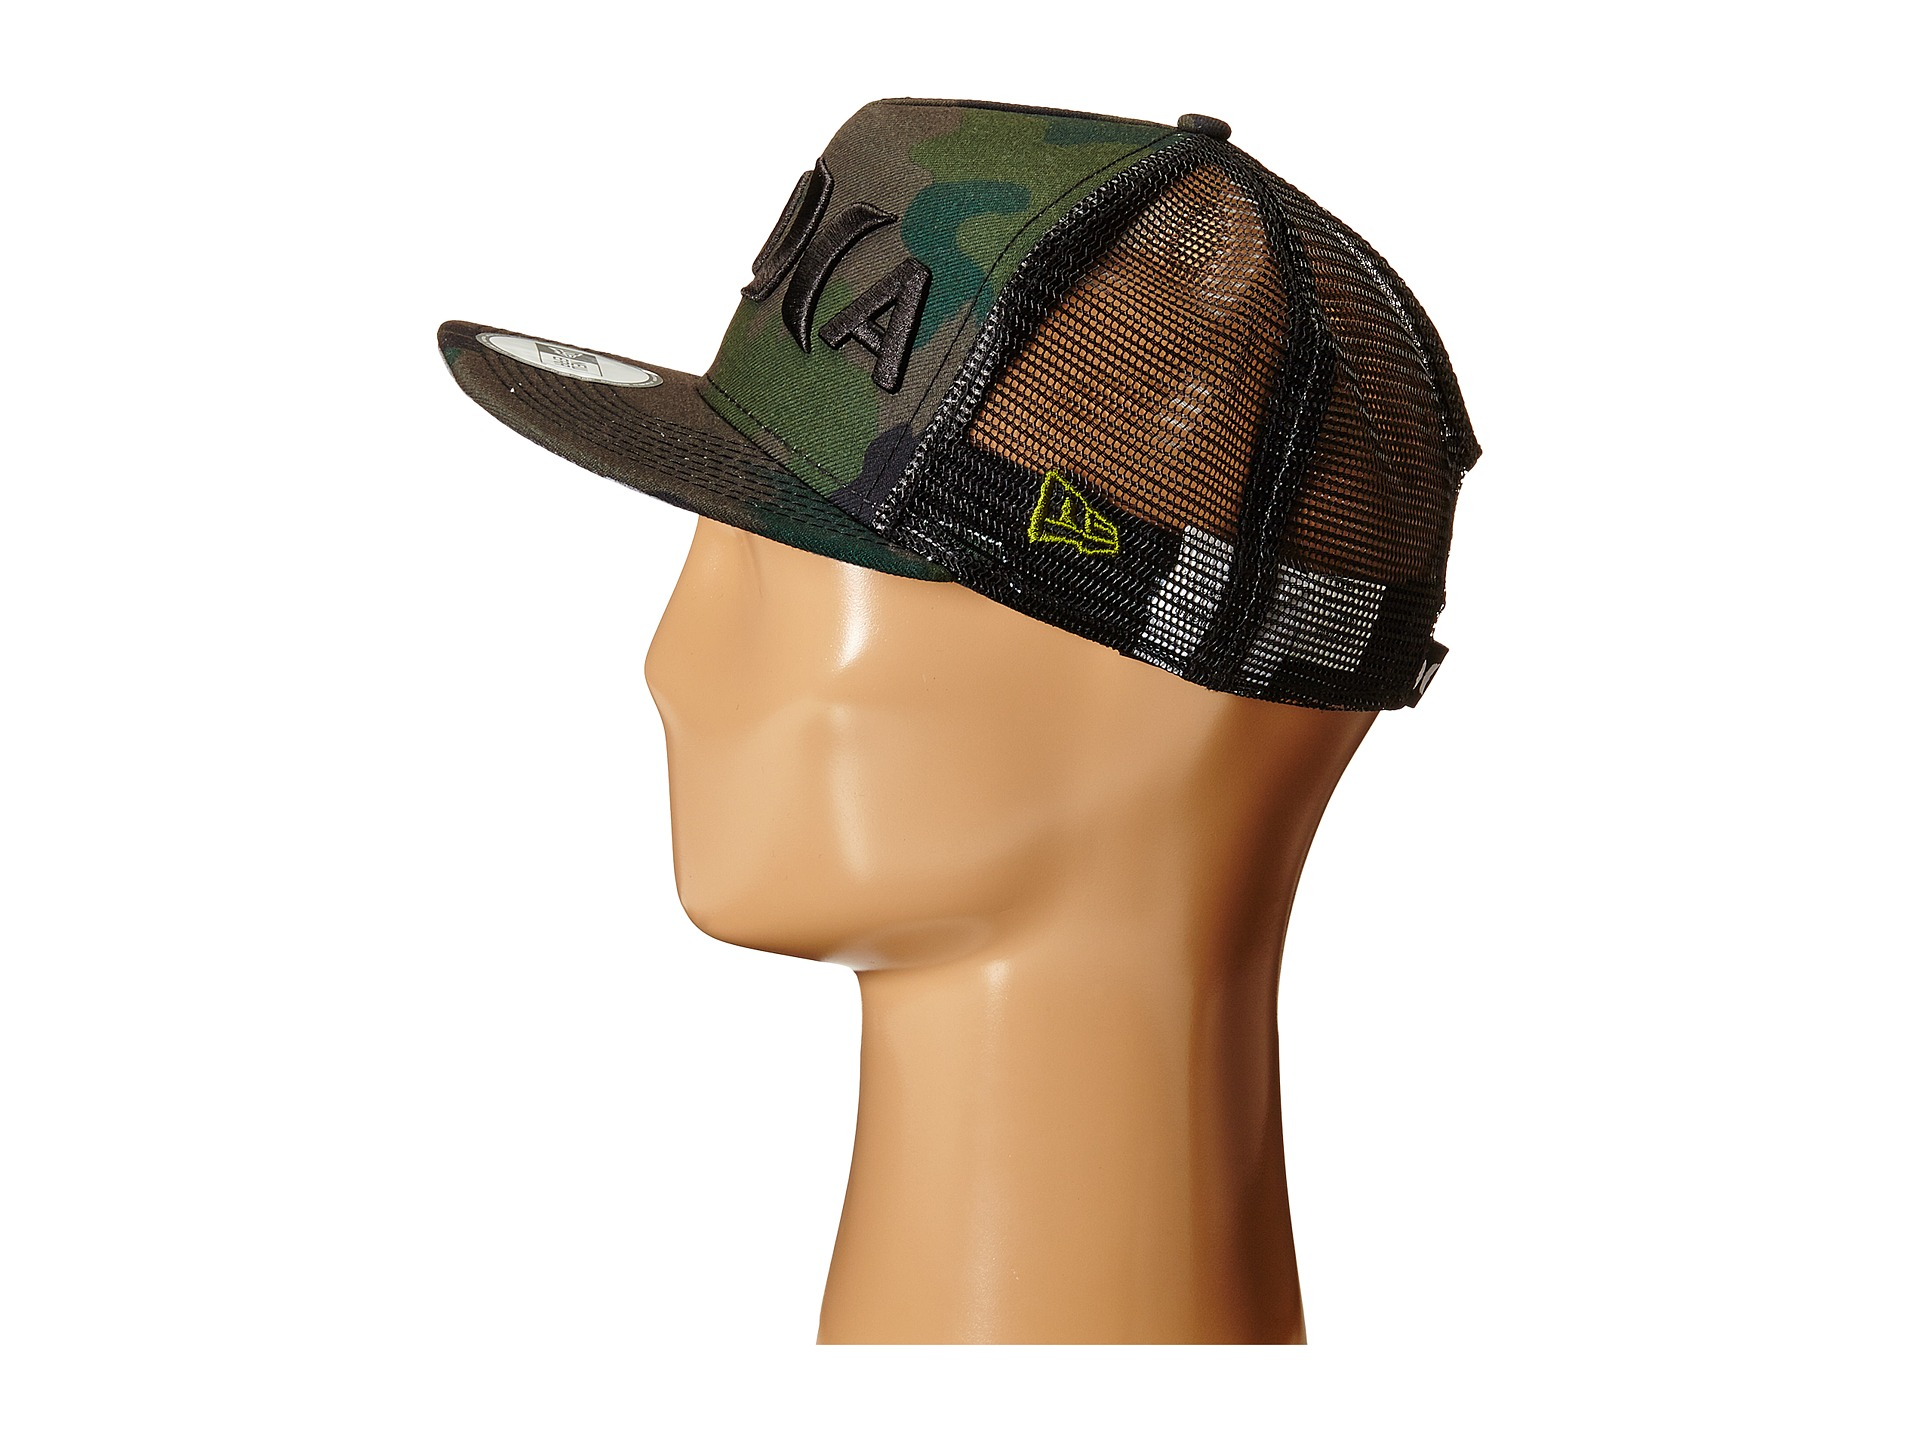 bdb2fe59ccc clearance lyst hurley jjf aloha hat in green for men 7e397 1a771